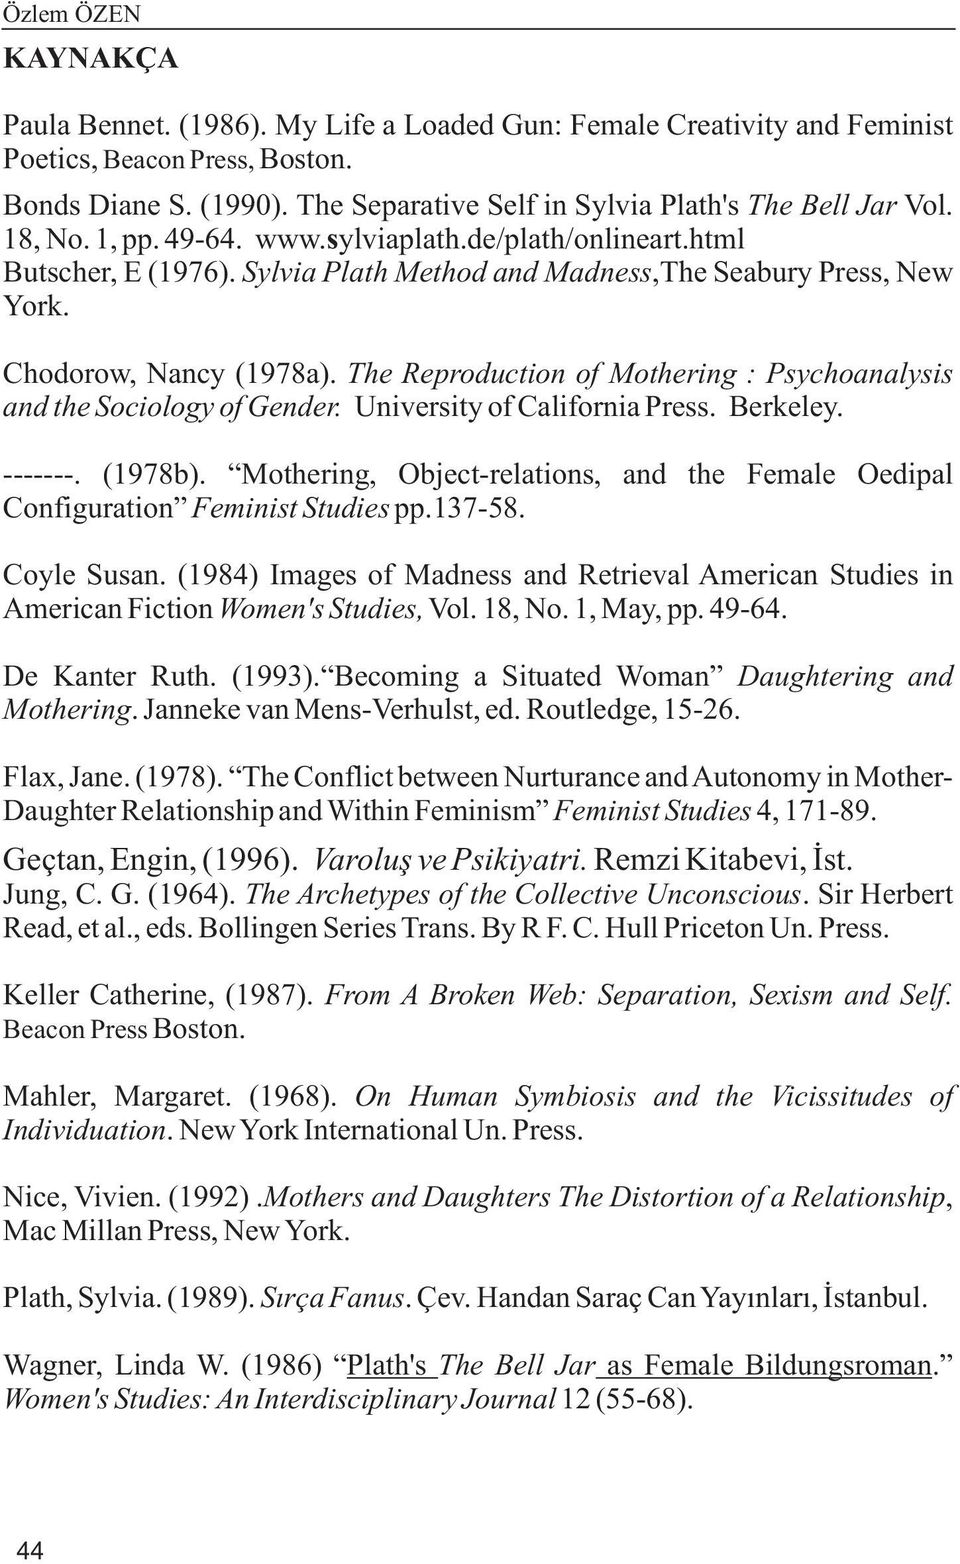 Chodorow, Nancy (1978a). The Reproduction of Mothering : Psychoanalysis and the Sociology of Gender. University of California Press. Berkeley. -------. (1978b).